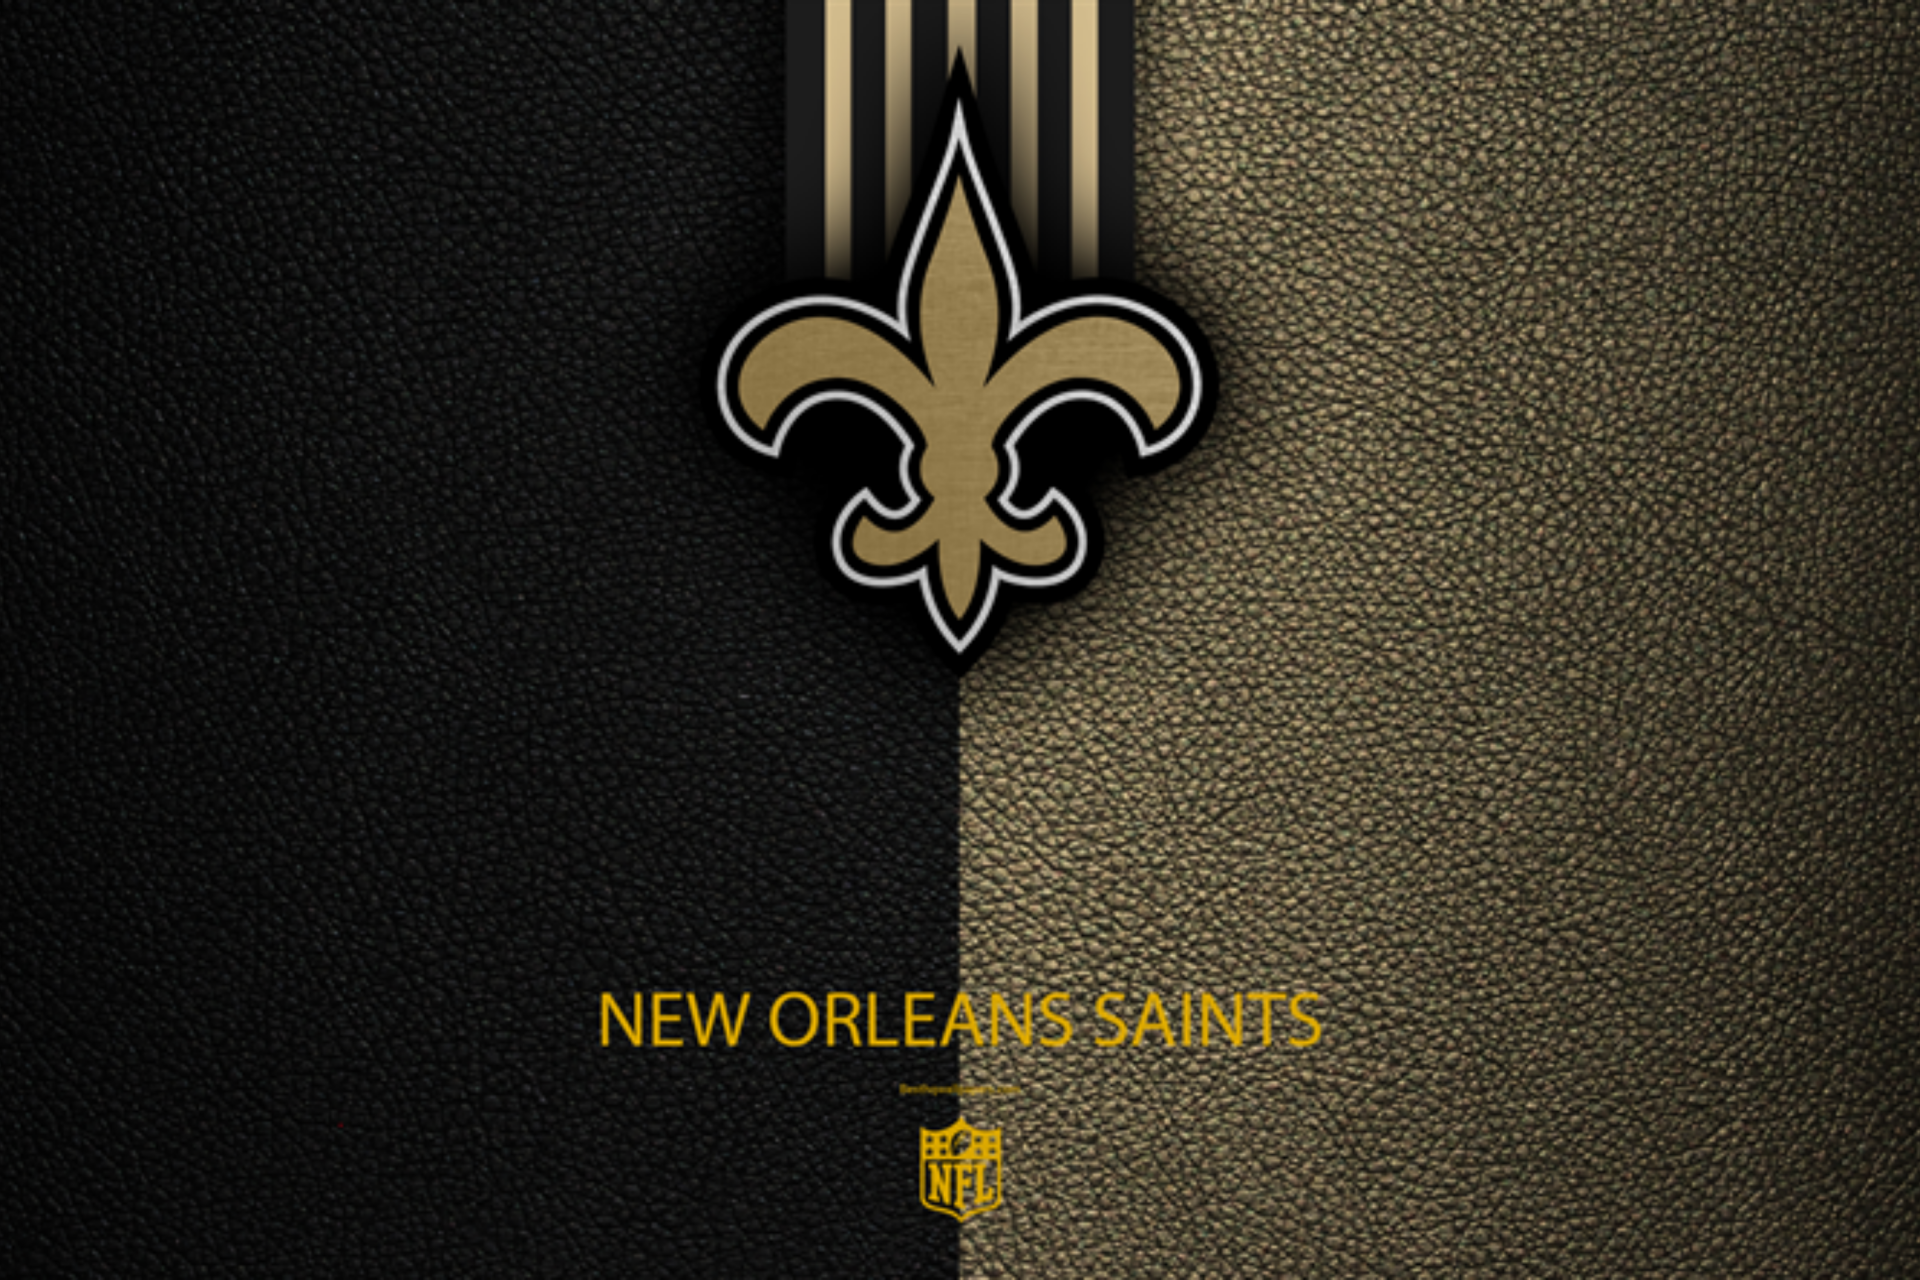 New Orleans Saints Schedule in 2021 NFL: Dates/Time, Team News, Predictions & Key Games